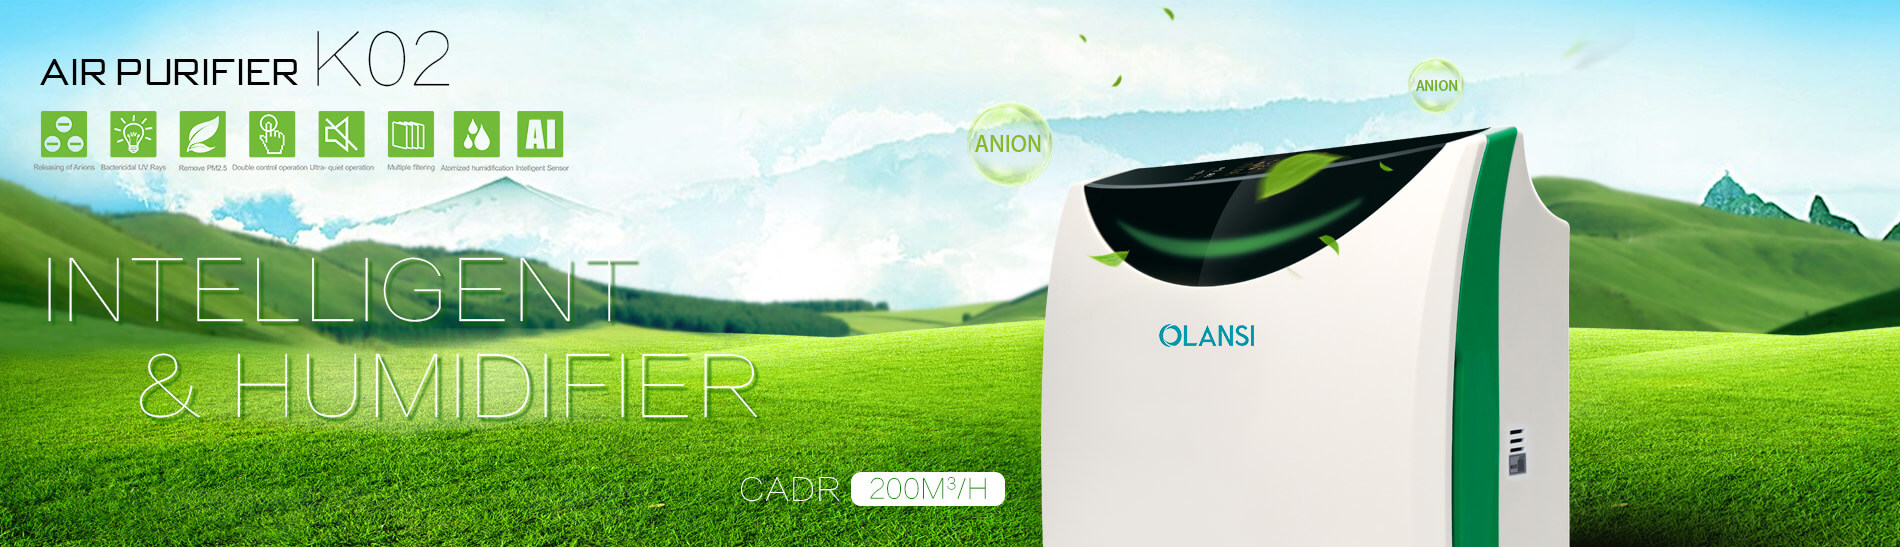 Olansi Healthcare Co., Ltd Newly Launched Air Purifiers To Make People To Breathe Easier And Live Healthier